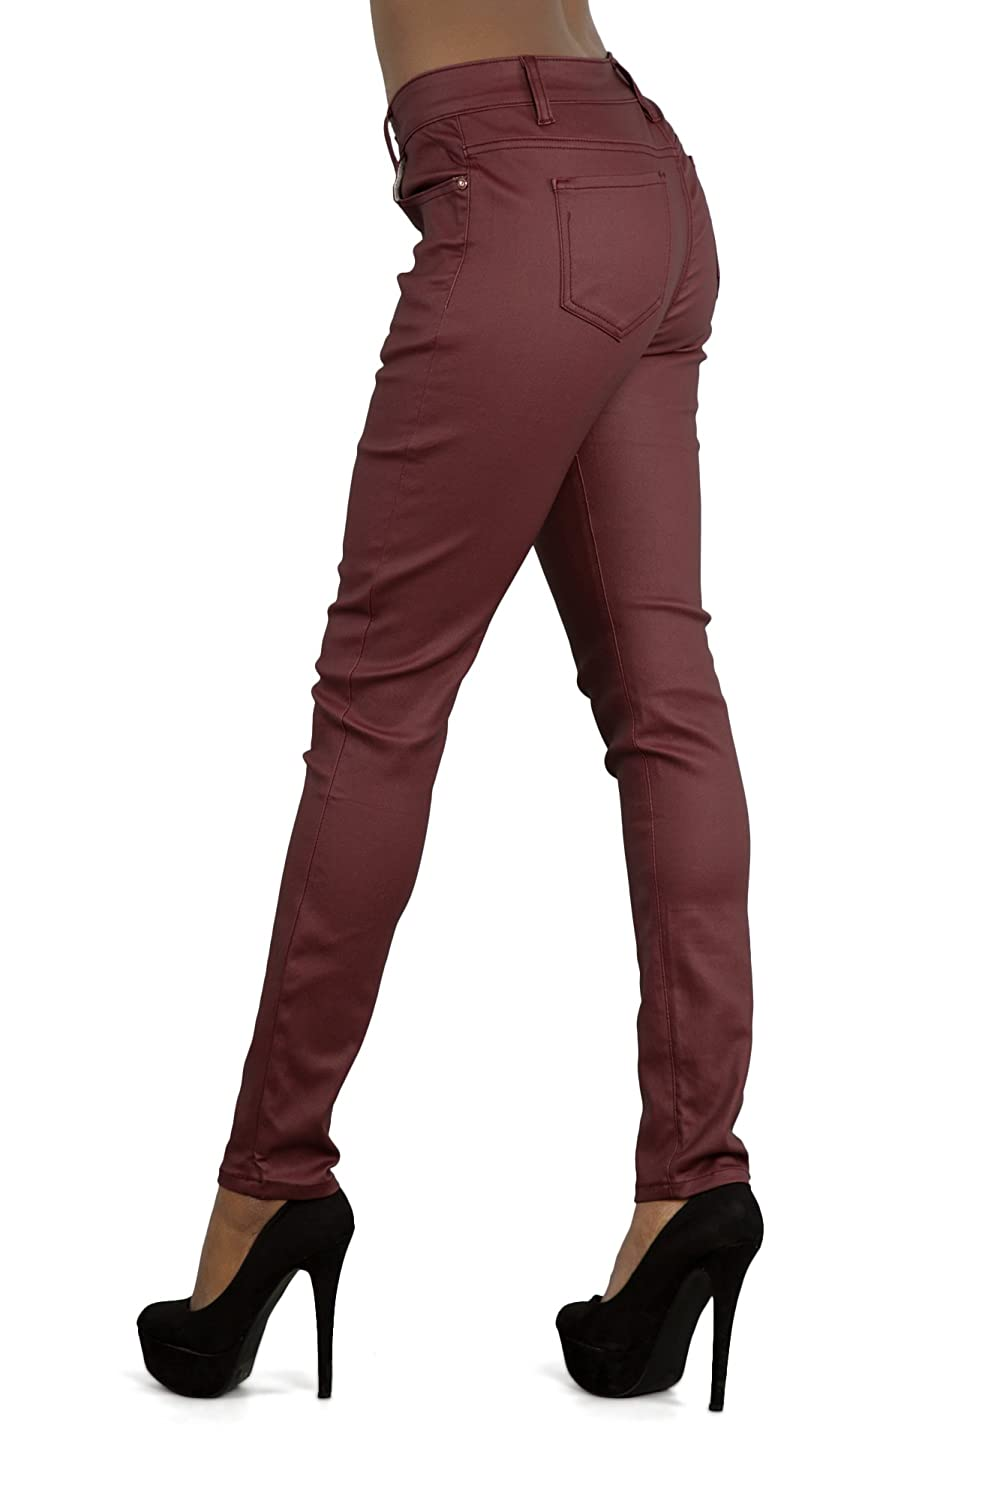 2b2e648b0e76 LustyChic Womens Leather Look Black Burgundy Plus Size Skinny Fit Trousers  Mid Rise Jeans Ladies UK Sizes 14-22 (22